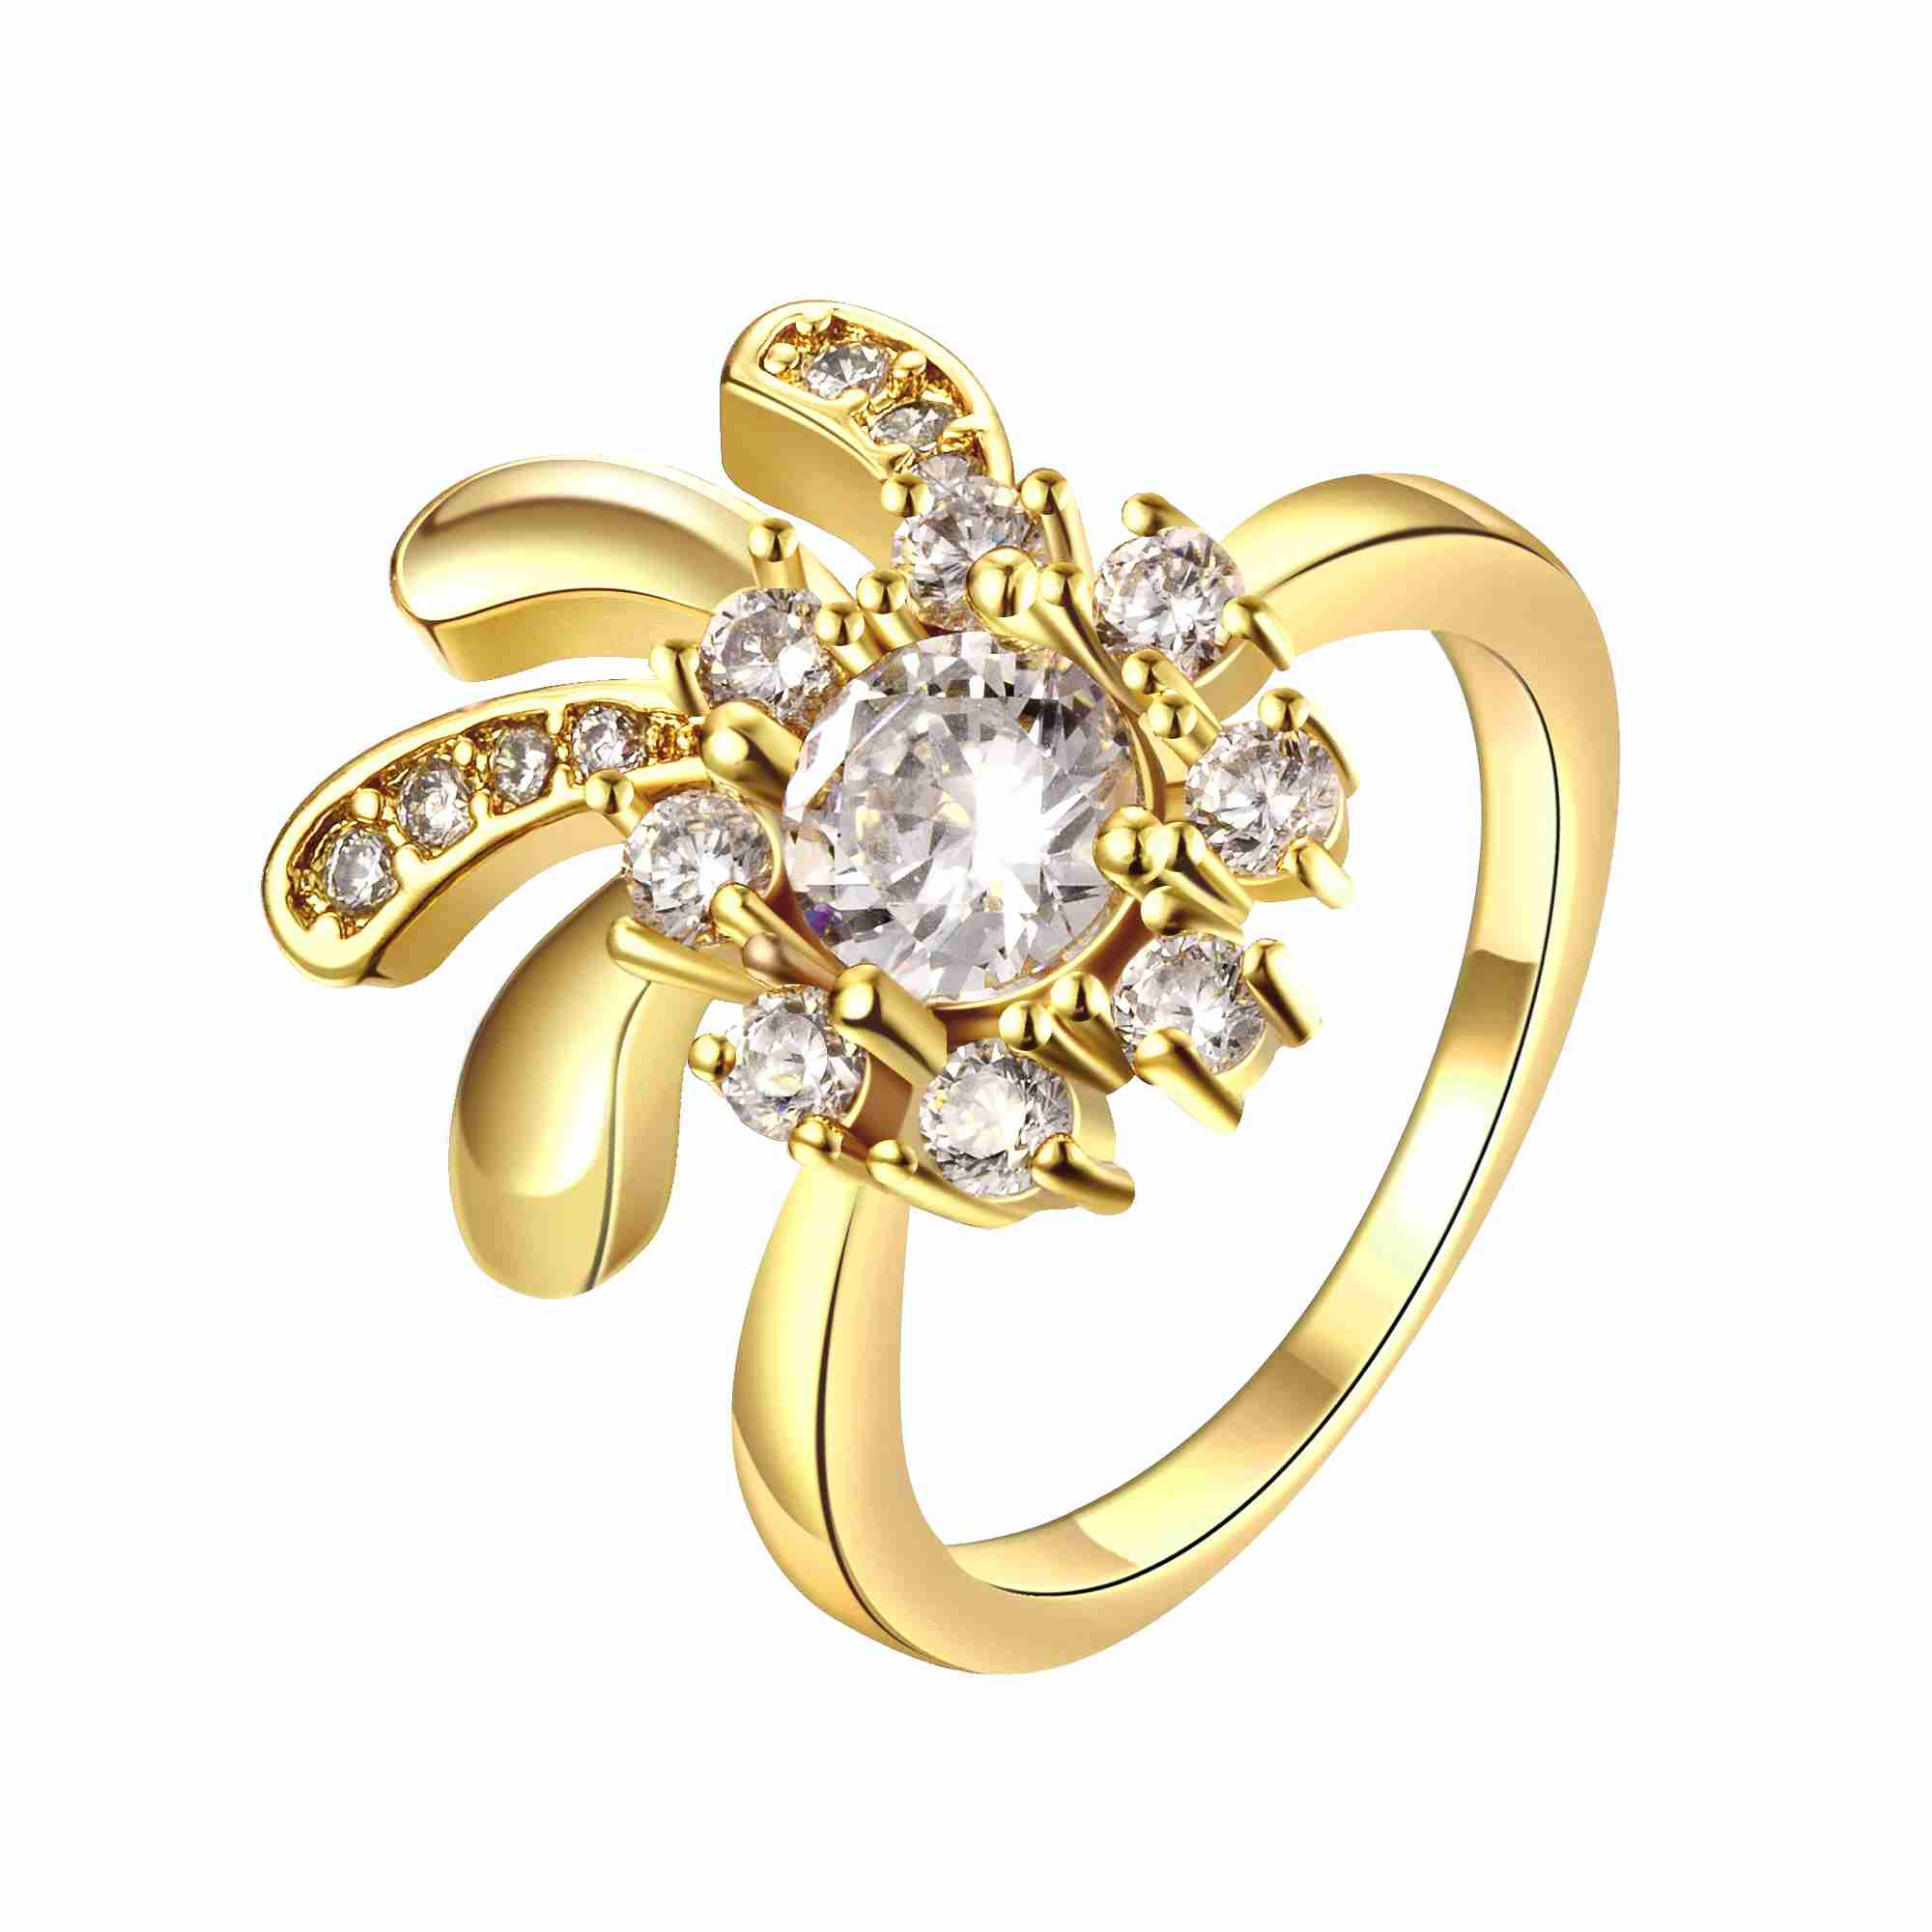 ᗛhot sell NEW women jewelry gold color rings for women Flowers in